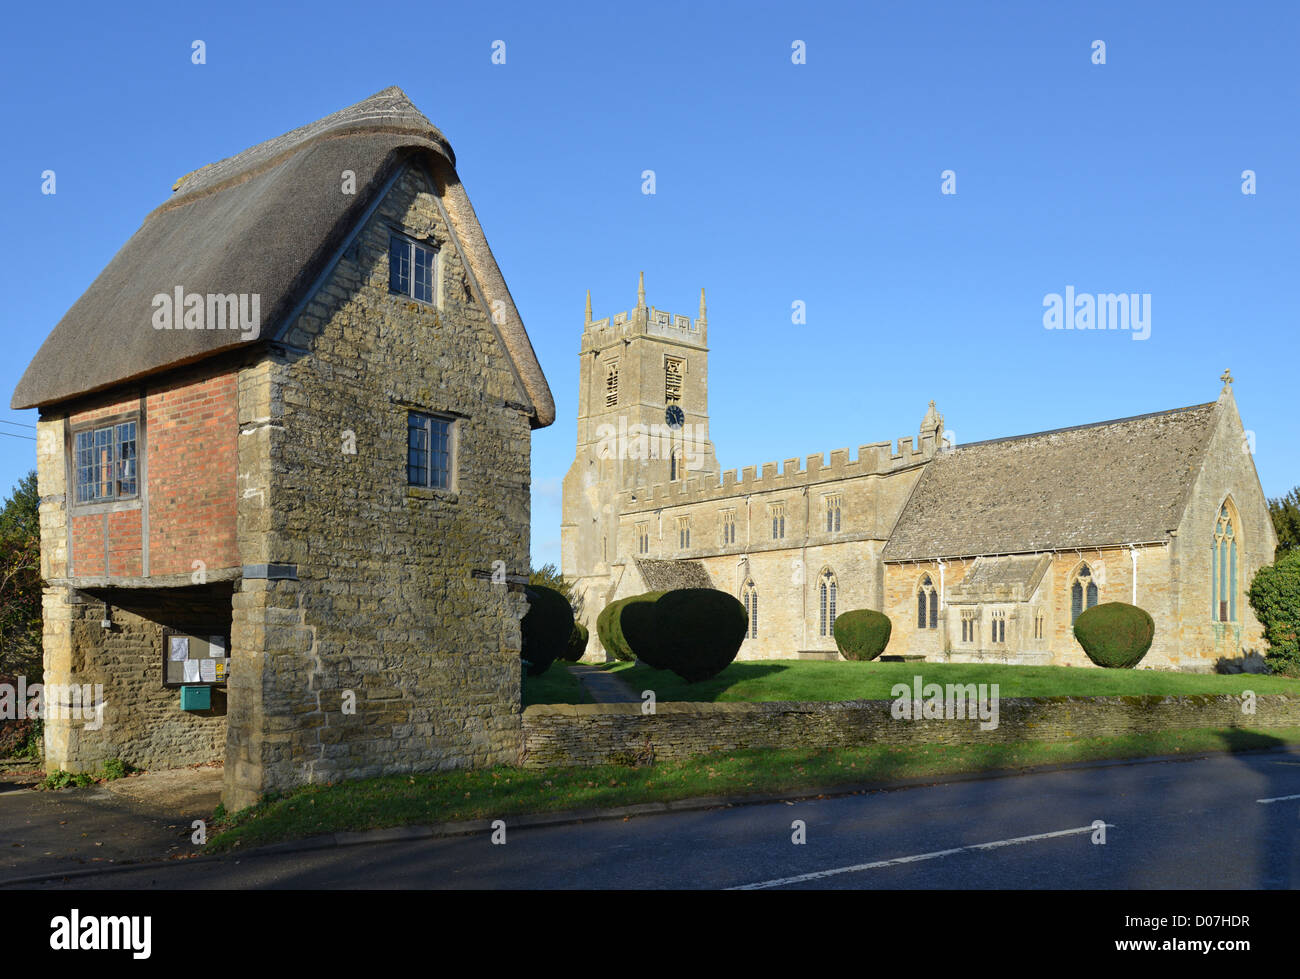 The Lych gate and 13th century Church of St Peter and St Paul, Long Compton, Warwickshire, England, United Kingdom - Stock Image